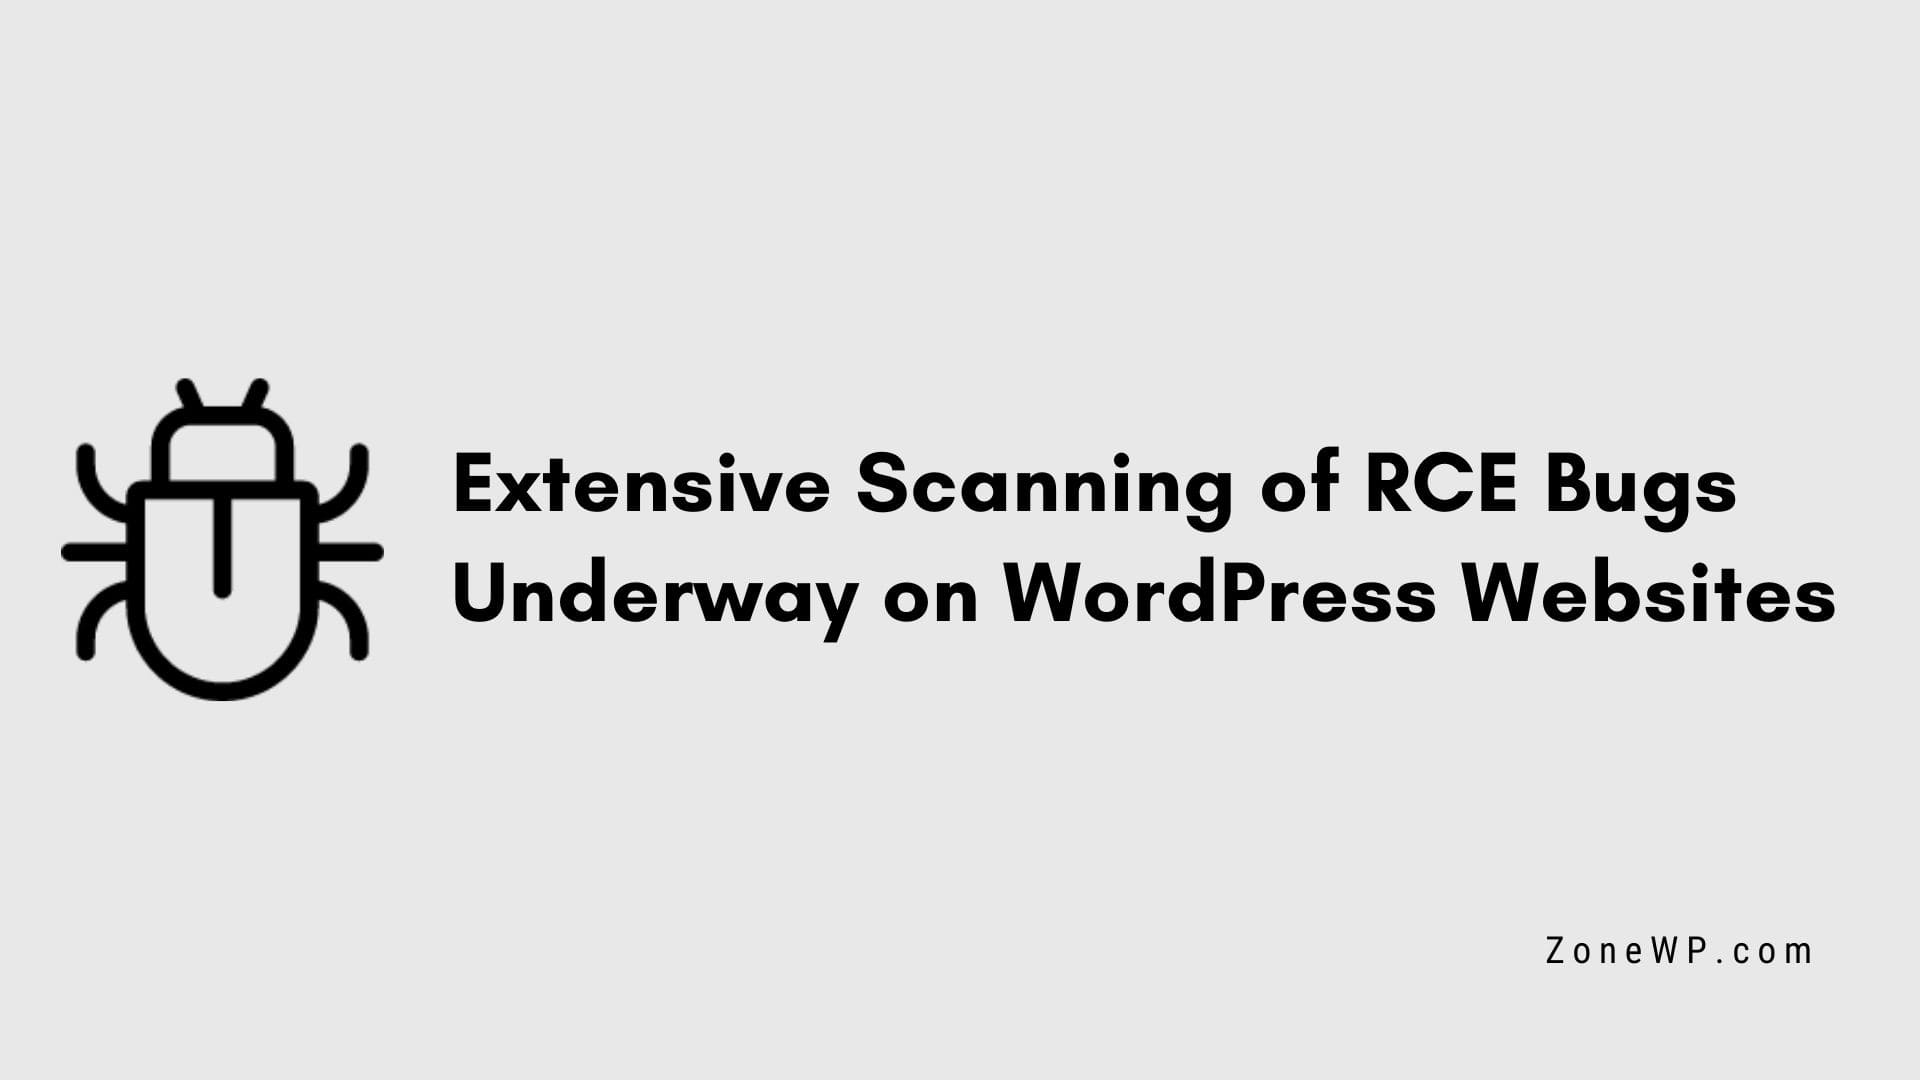 Extensive Scanning of RCE Bugs Underway on WordPress Websites